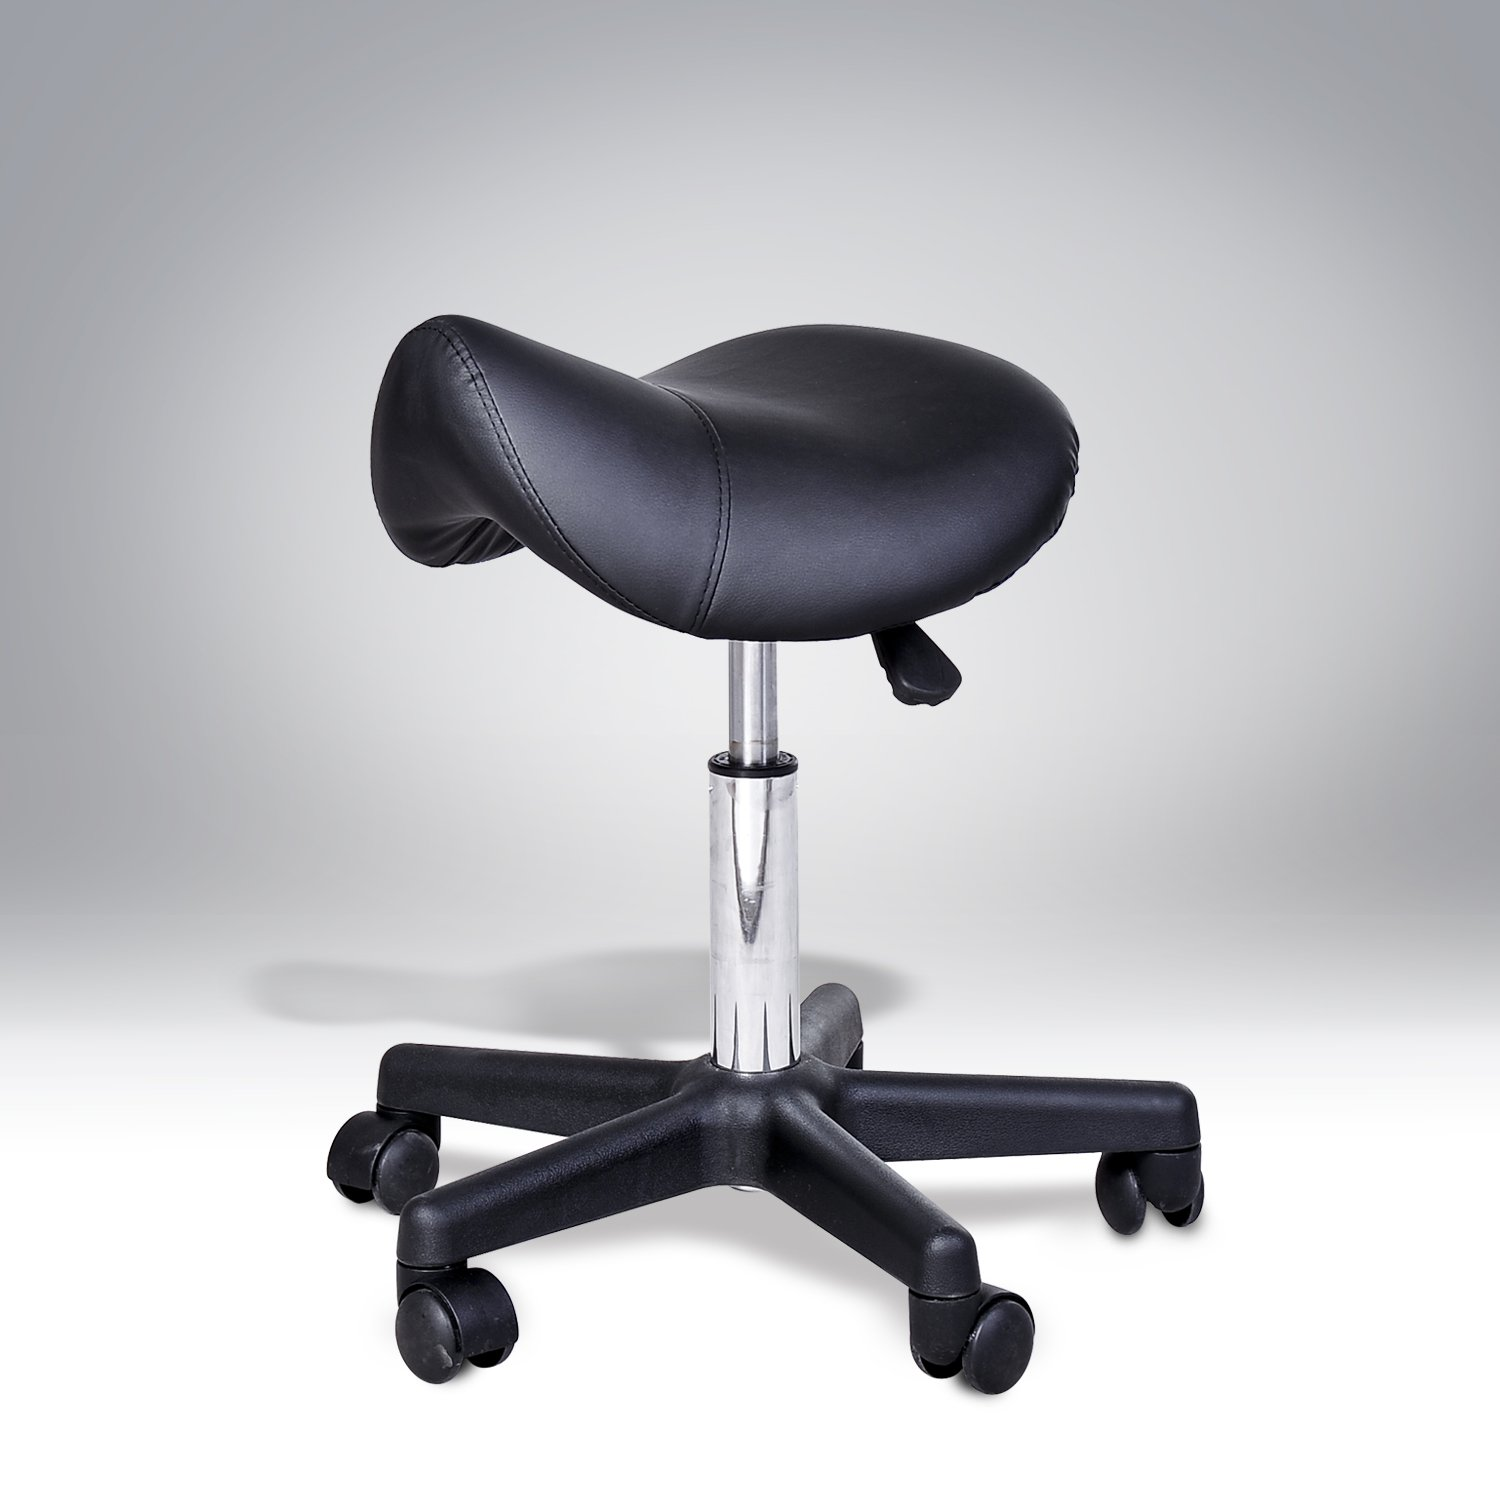 Hom Massage Beauty Therapy Gas Stool Height Adjustable Saddle